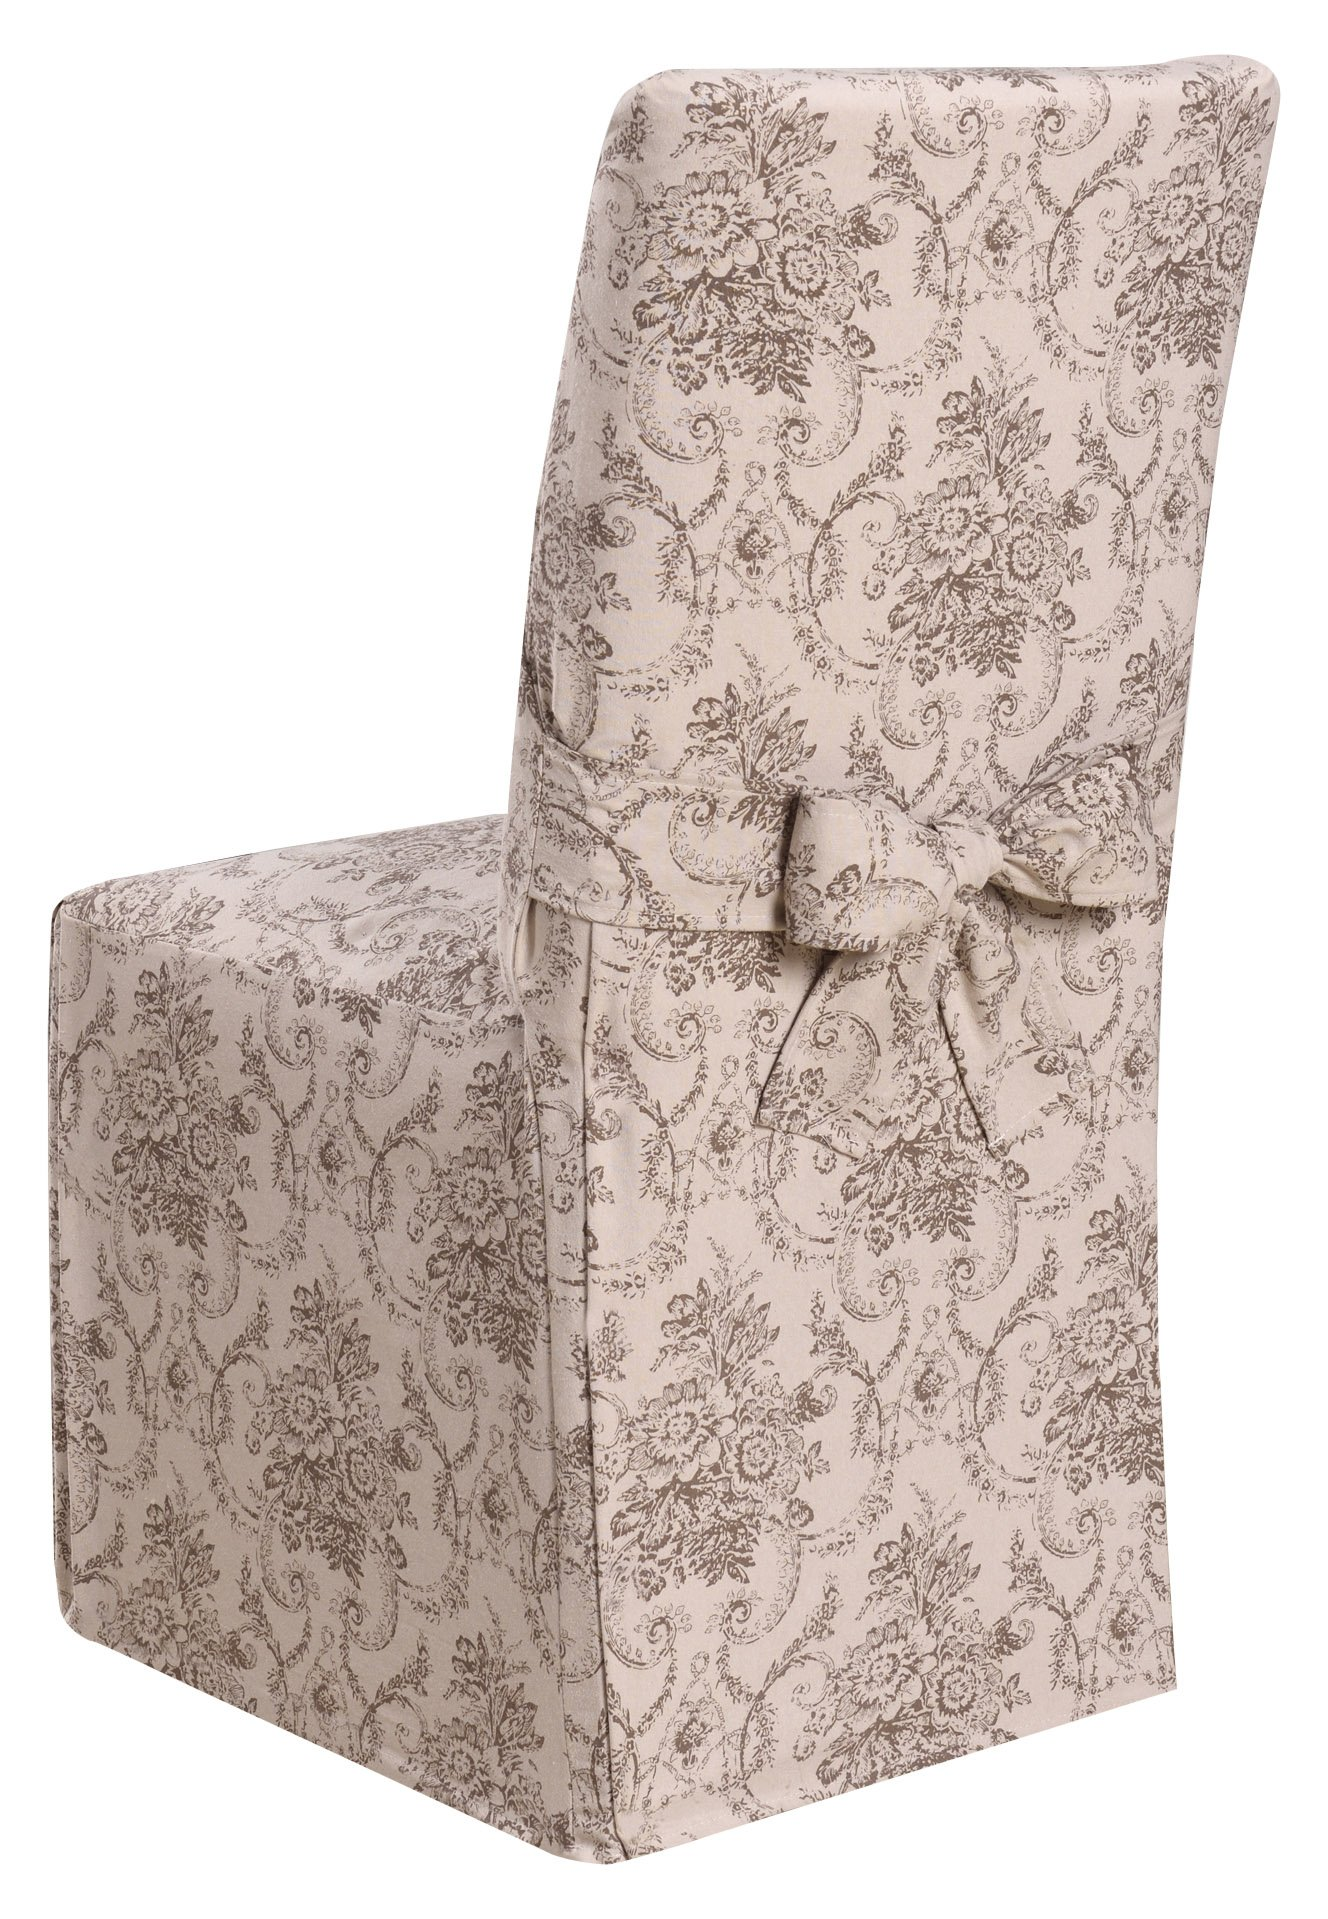 Madison Chateau Slipcover Slicover, Dining Room Chair, Taupe